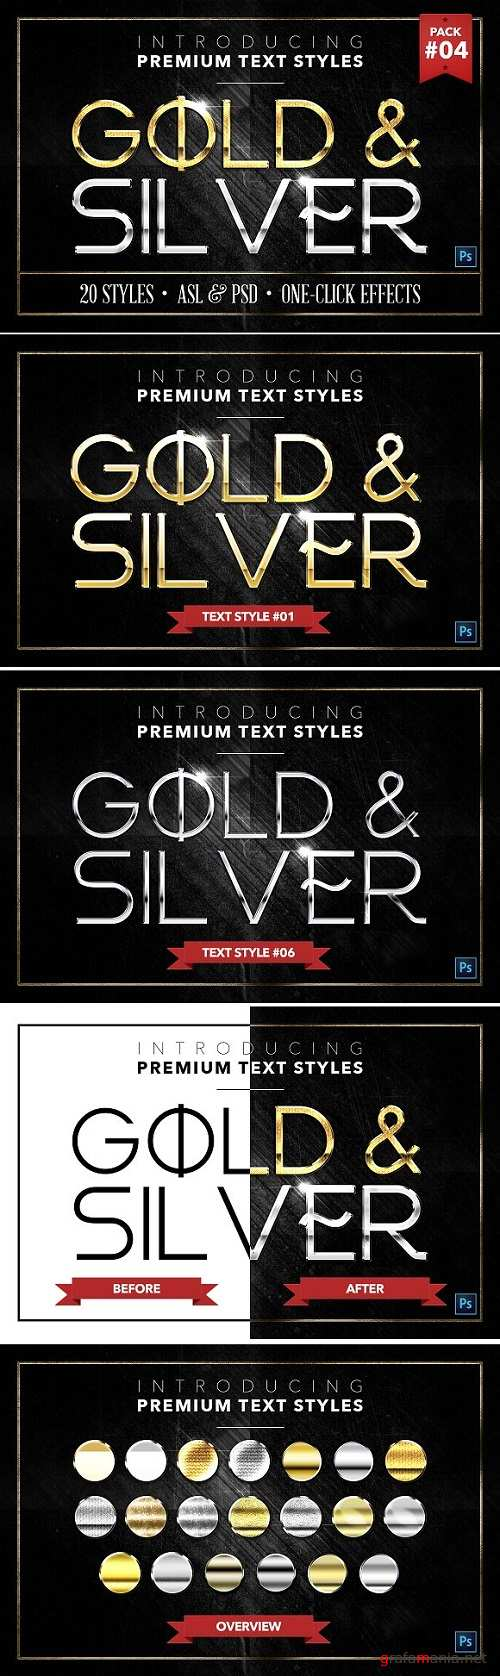 Gold & Silver #4 - 20 Styles 1306595